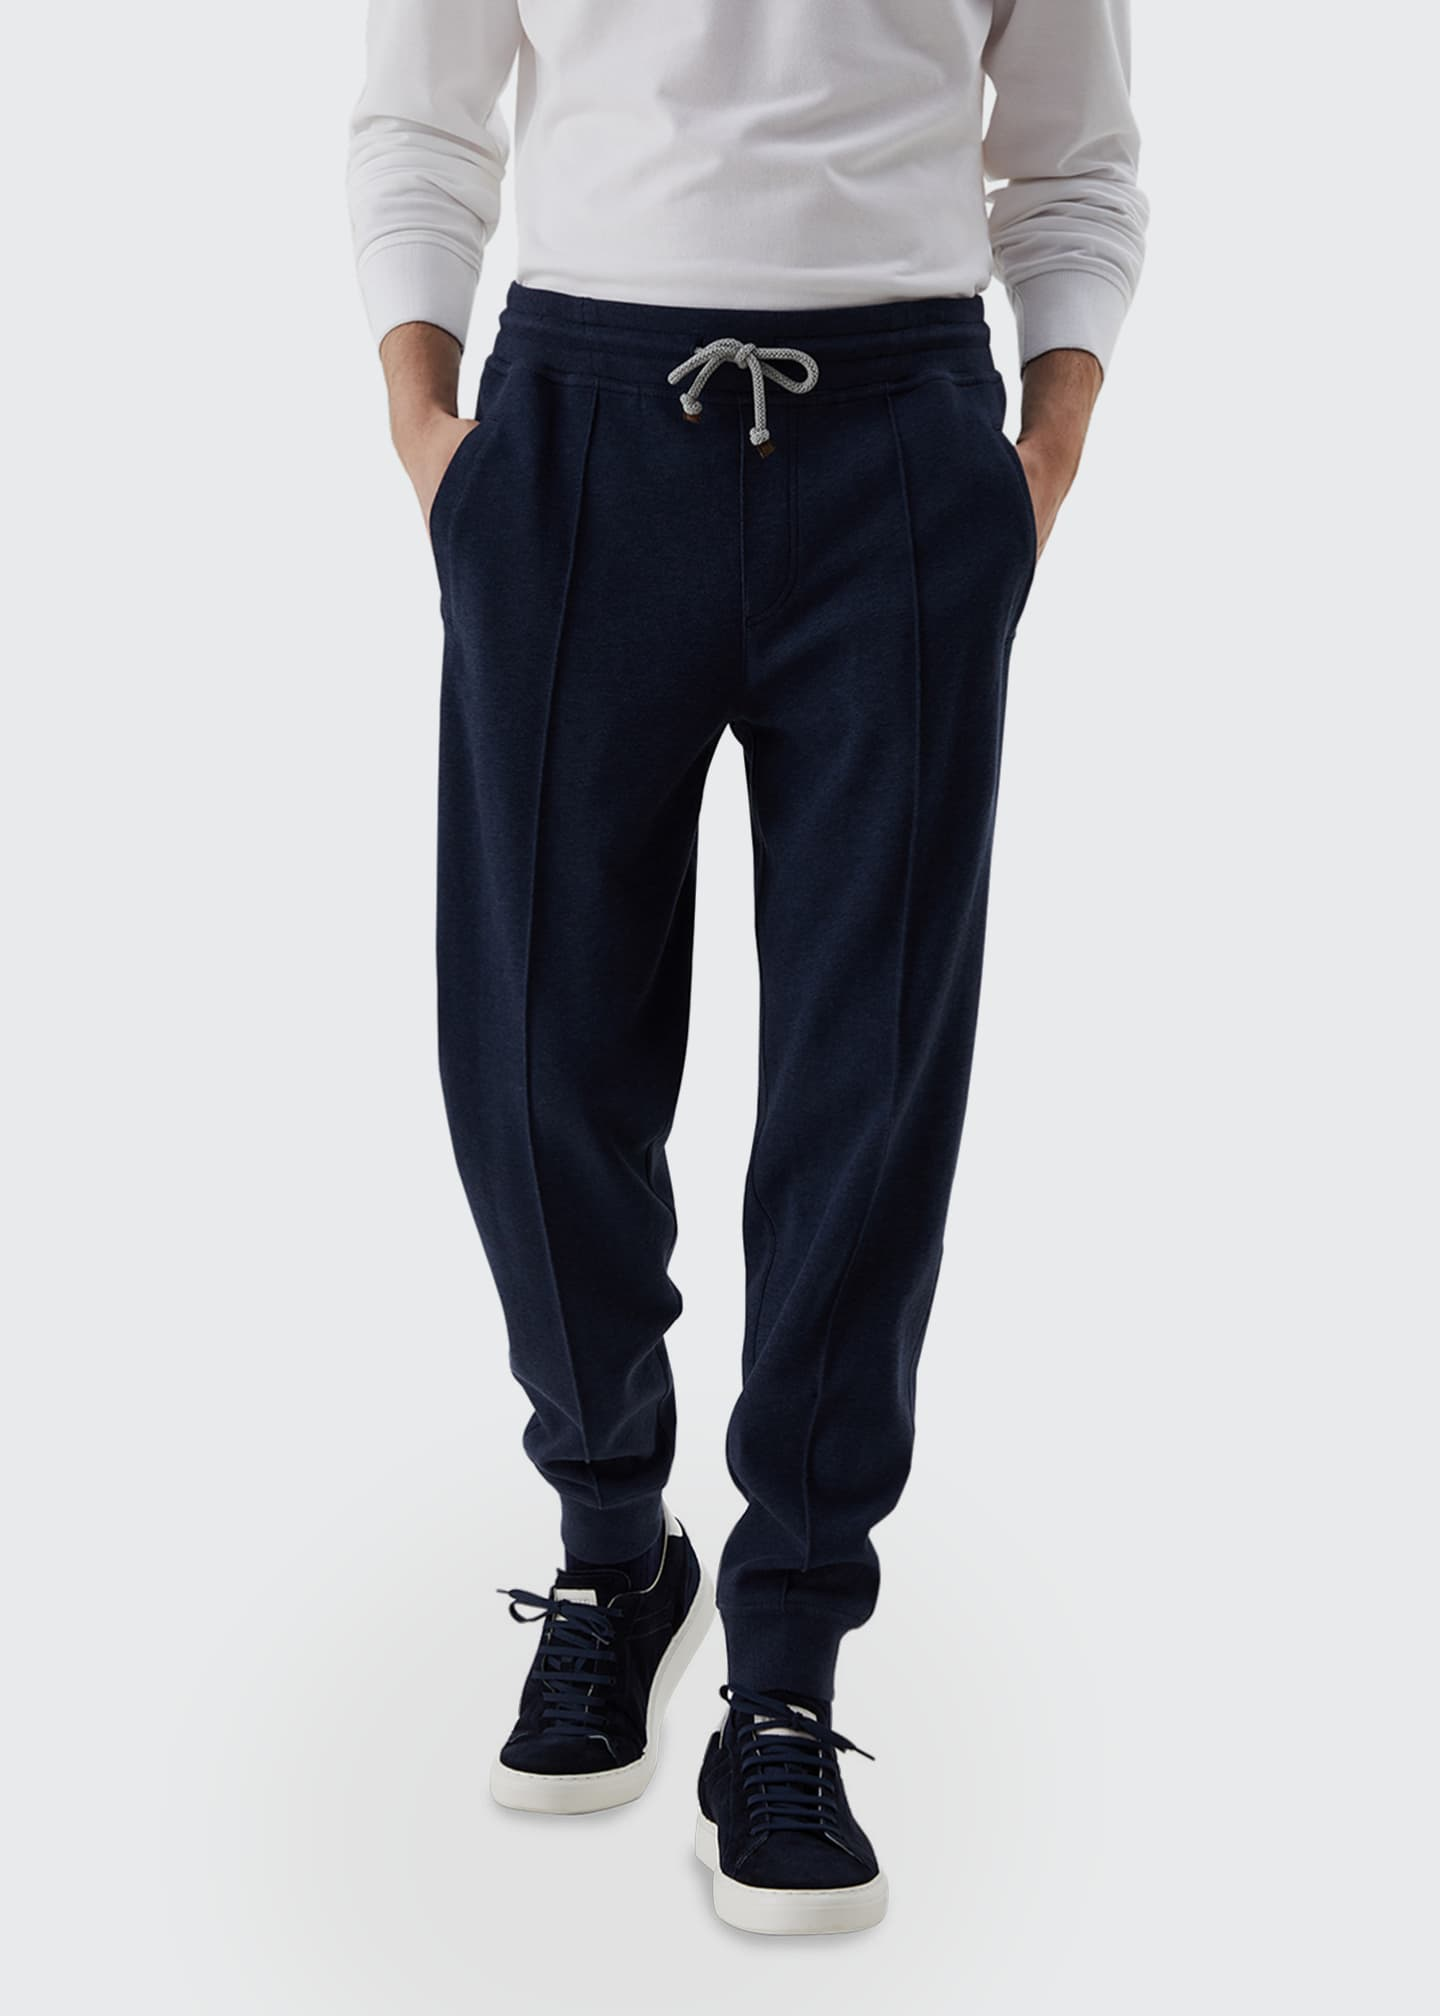 Image 1 of 3: Men's Drawstring Banded Sweatpants